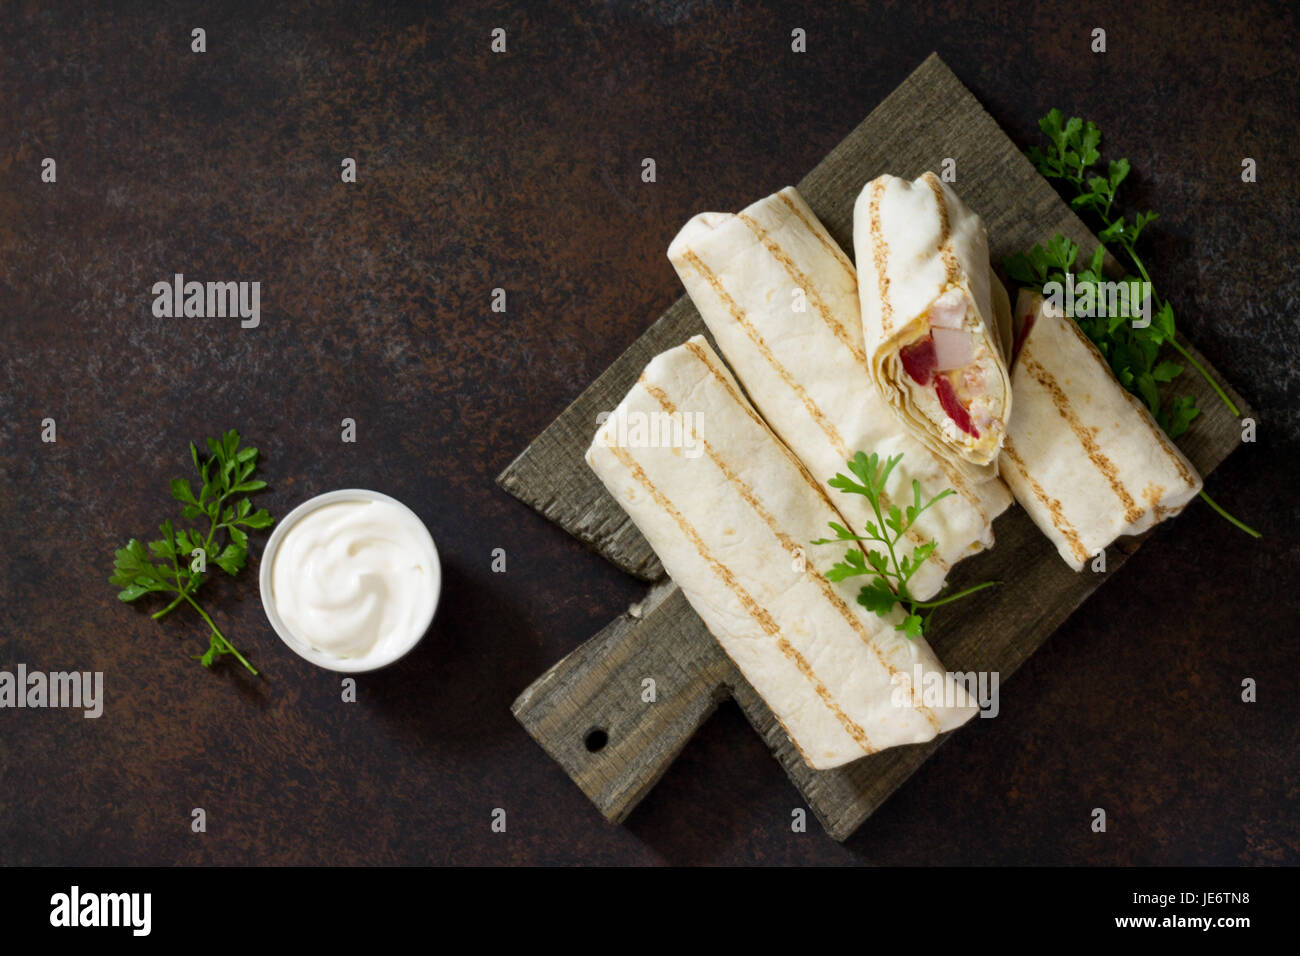 Shawarma pita bread with grilled chicken, fresh vegetables and cream sauce on a background of brown stone. Top view Stock Photo